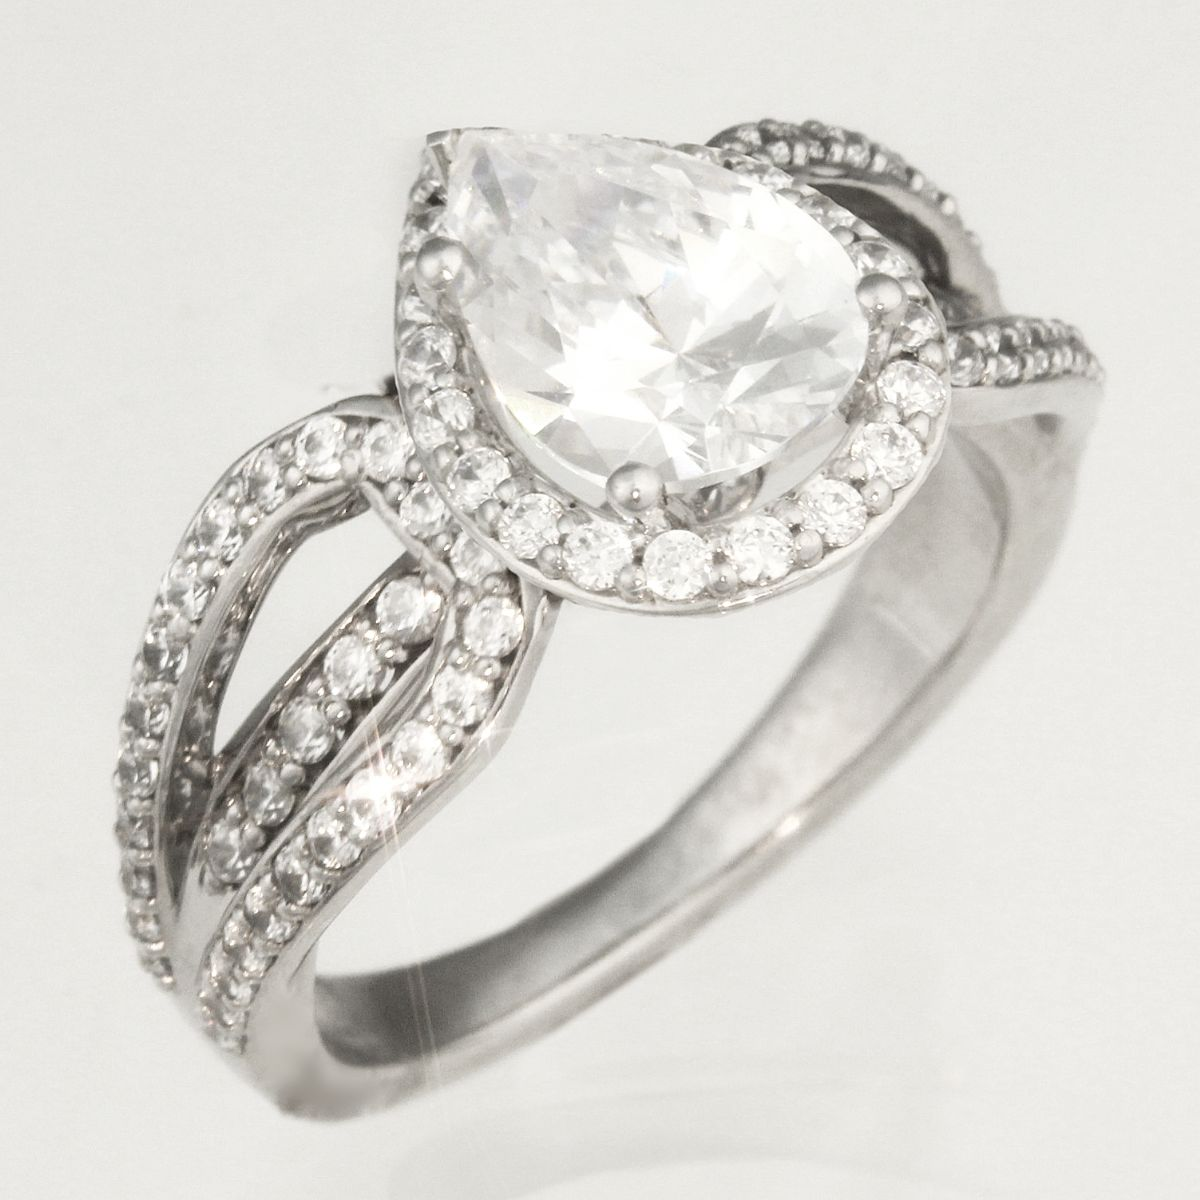 Combination Ring MockUp with Pear Diamond